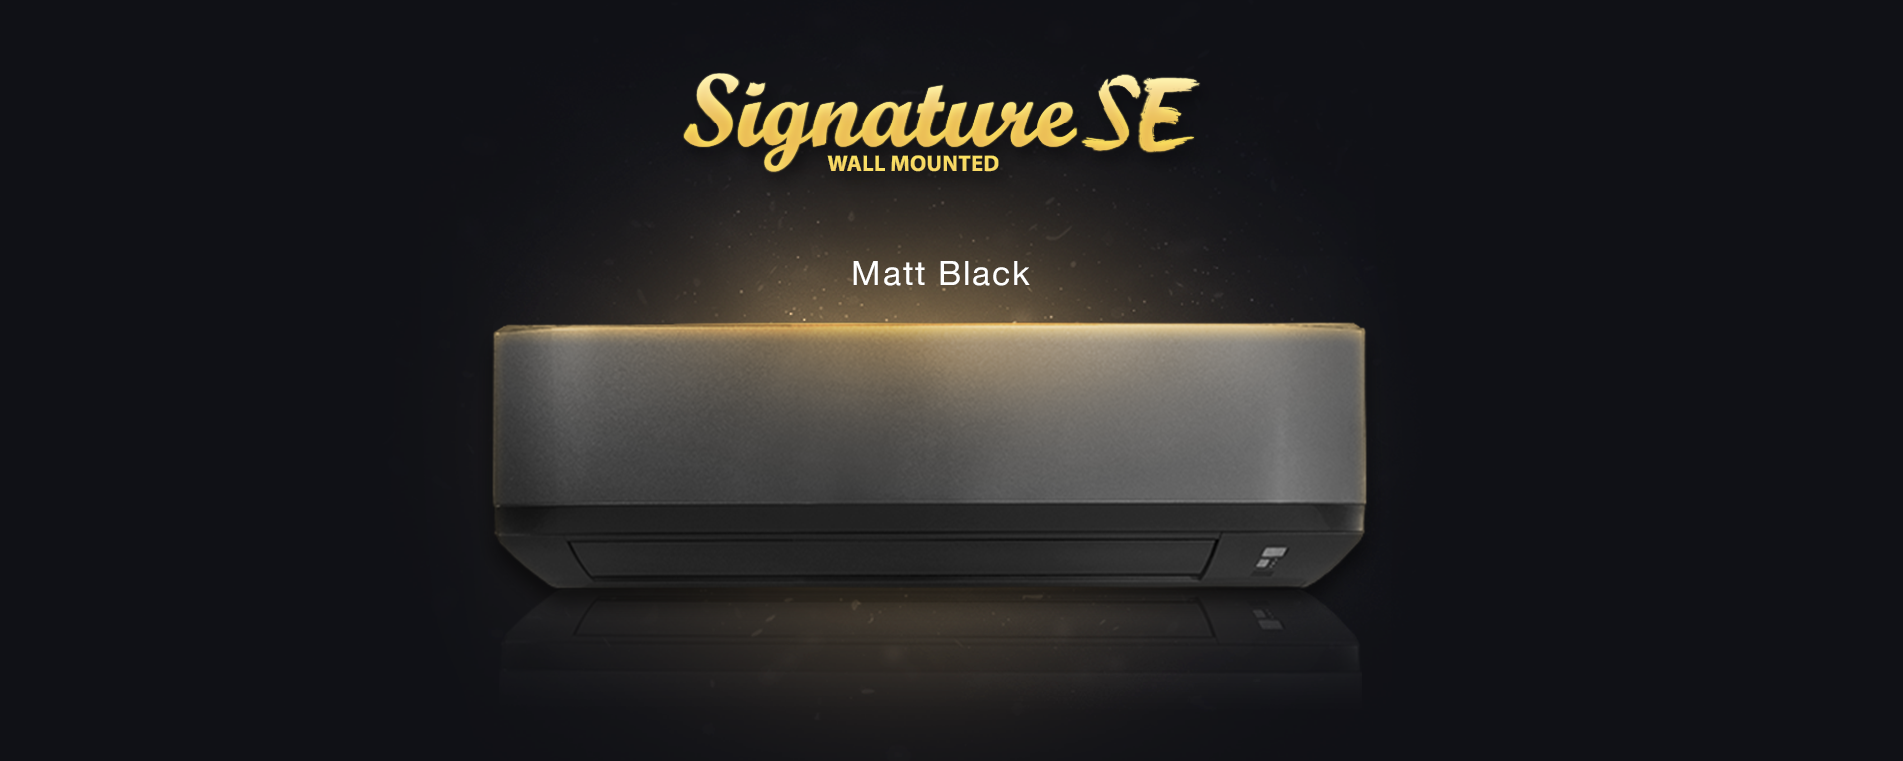 Signature SE Matt Black